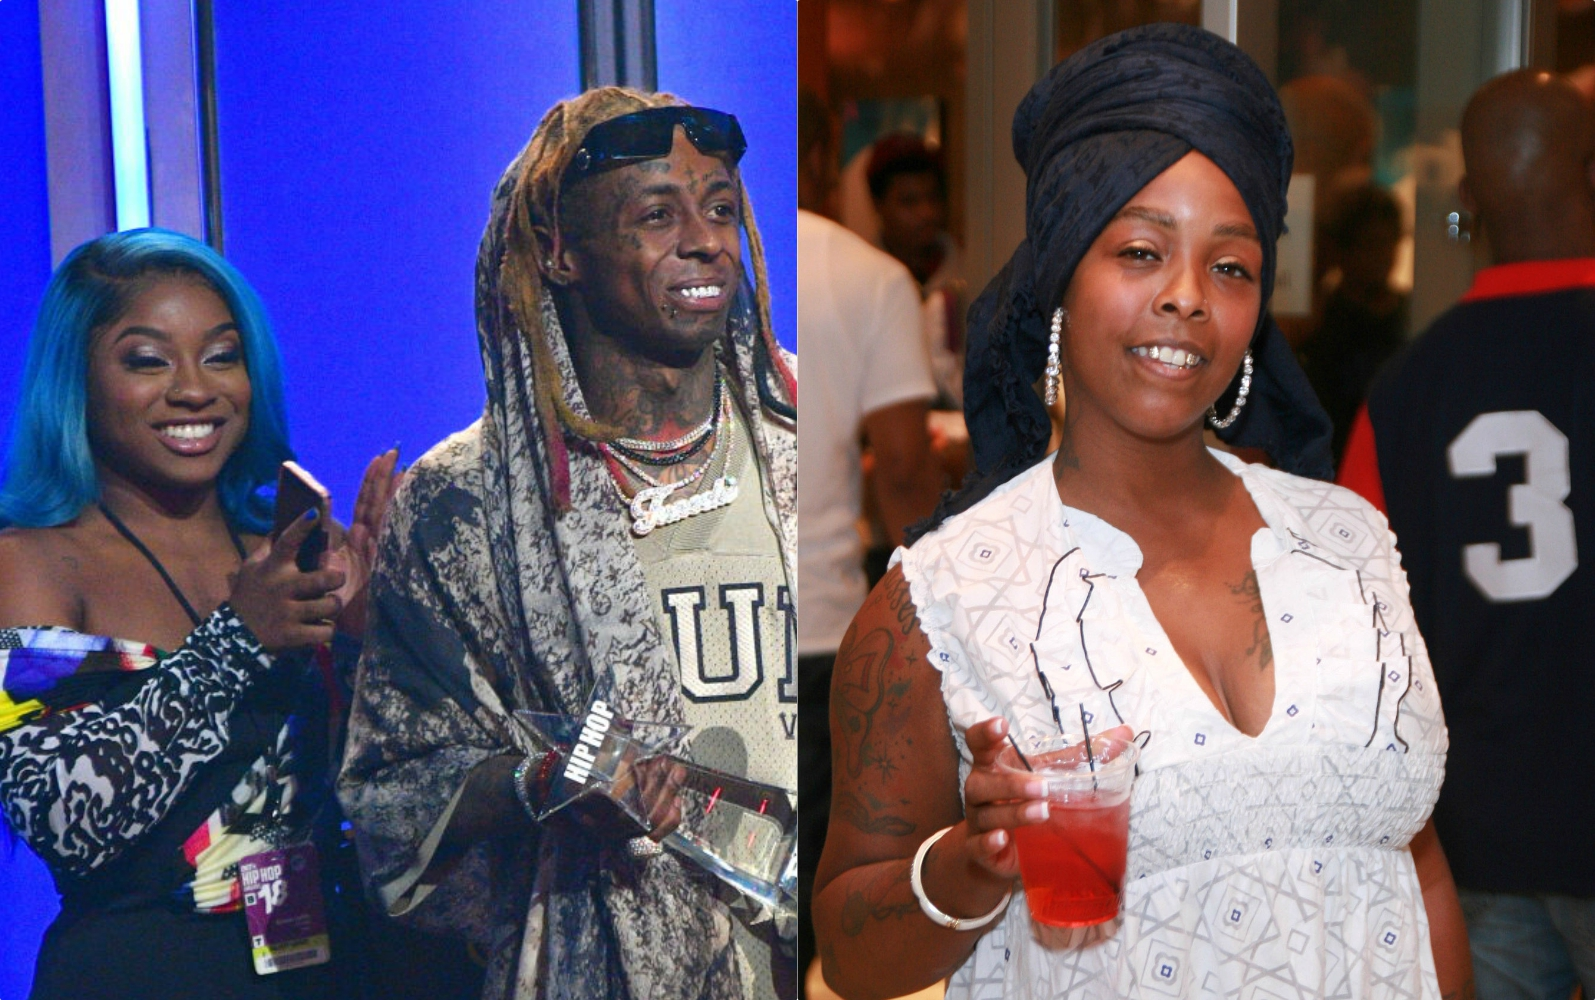 Messy Khia Drags Reginae Carter S Looks Plucks Lil Wayne S Dreads One By One Over His George Floyd Comments Thedailymagazines